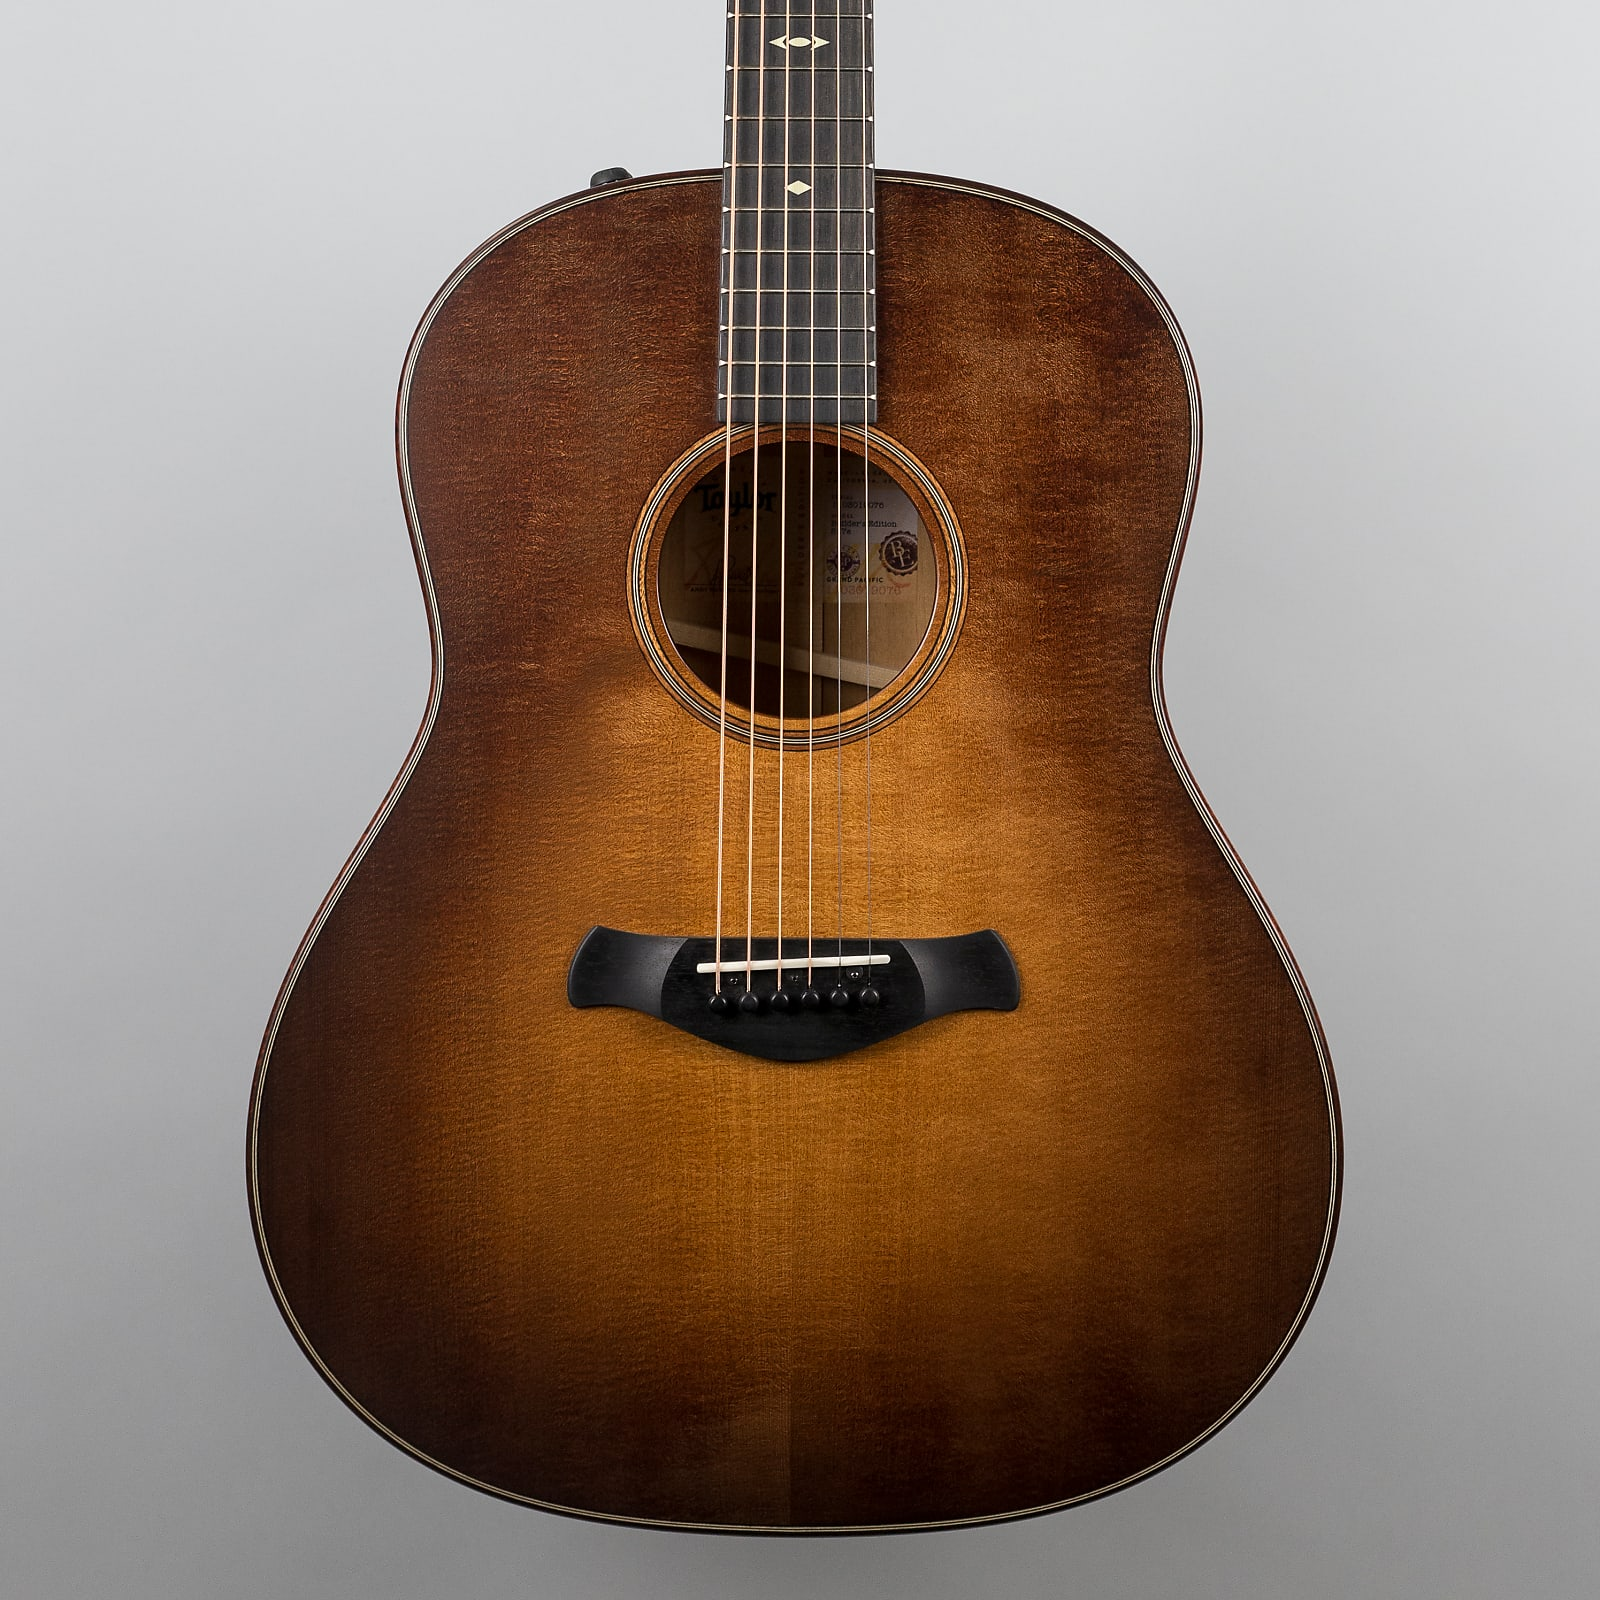 Taylor 517e Builder's Edition Grand Pacific, V-Class Bracing, Wild Honey Burst Finish